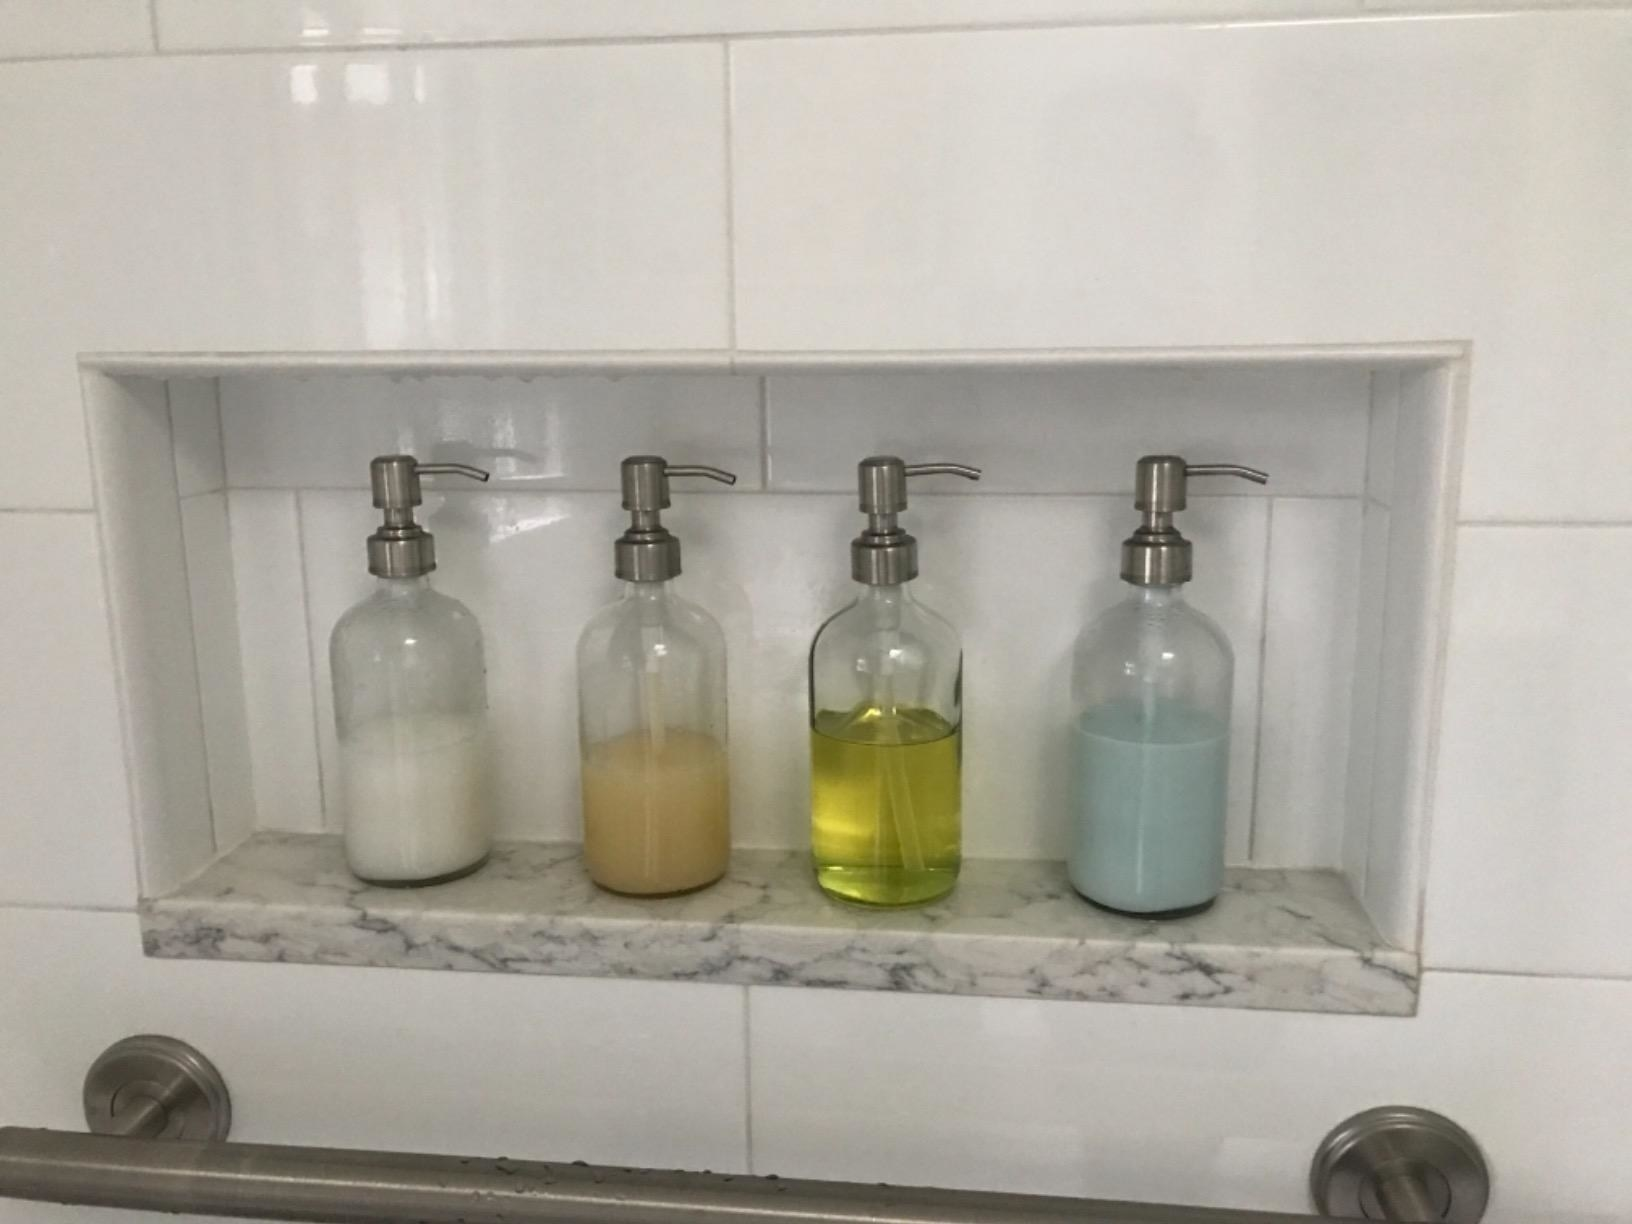 A reviewer photo of four soap dispensers in a shower filled with different liquids